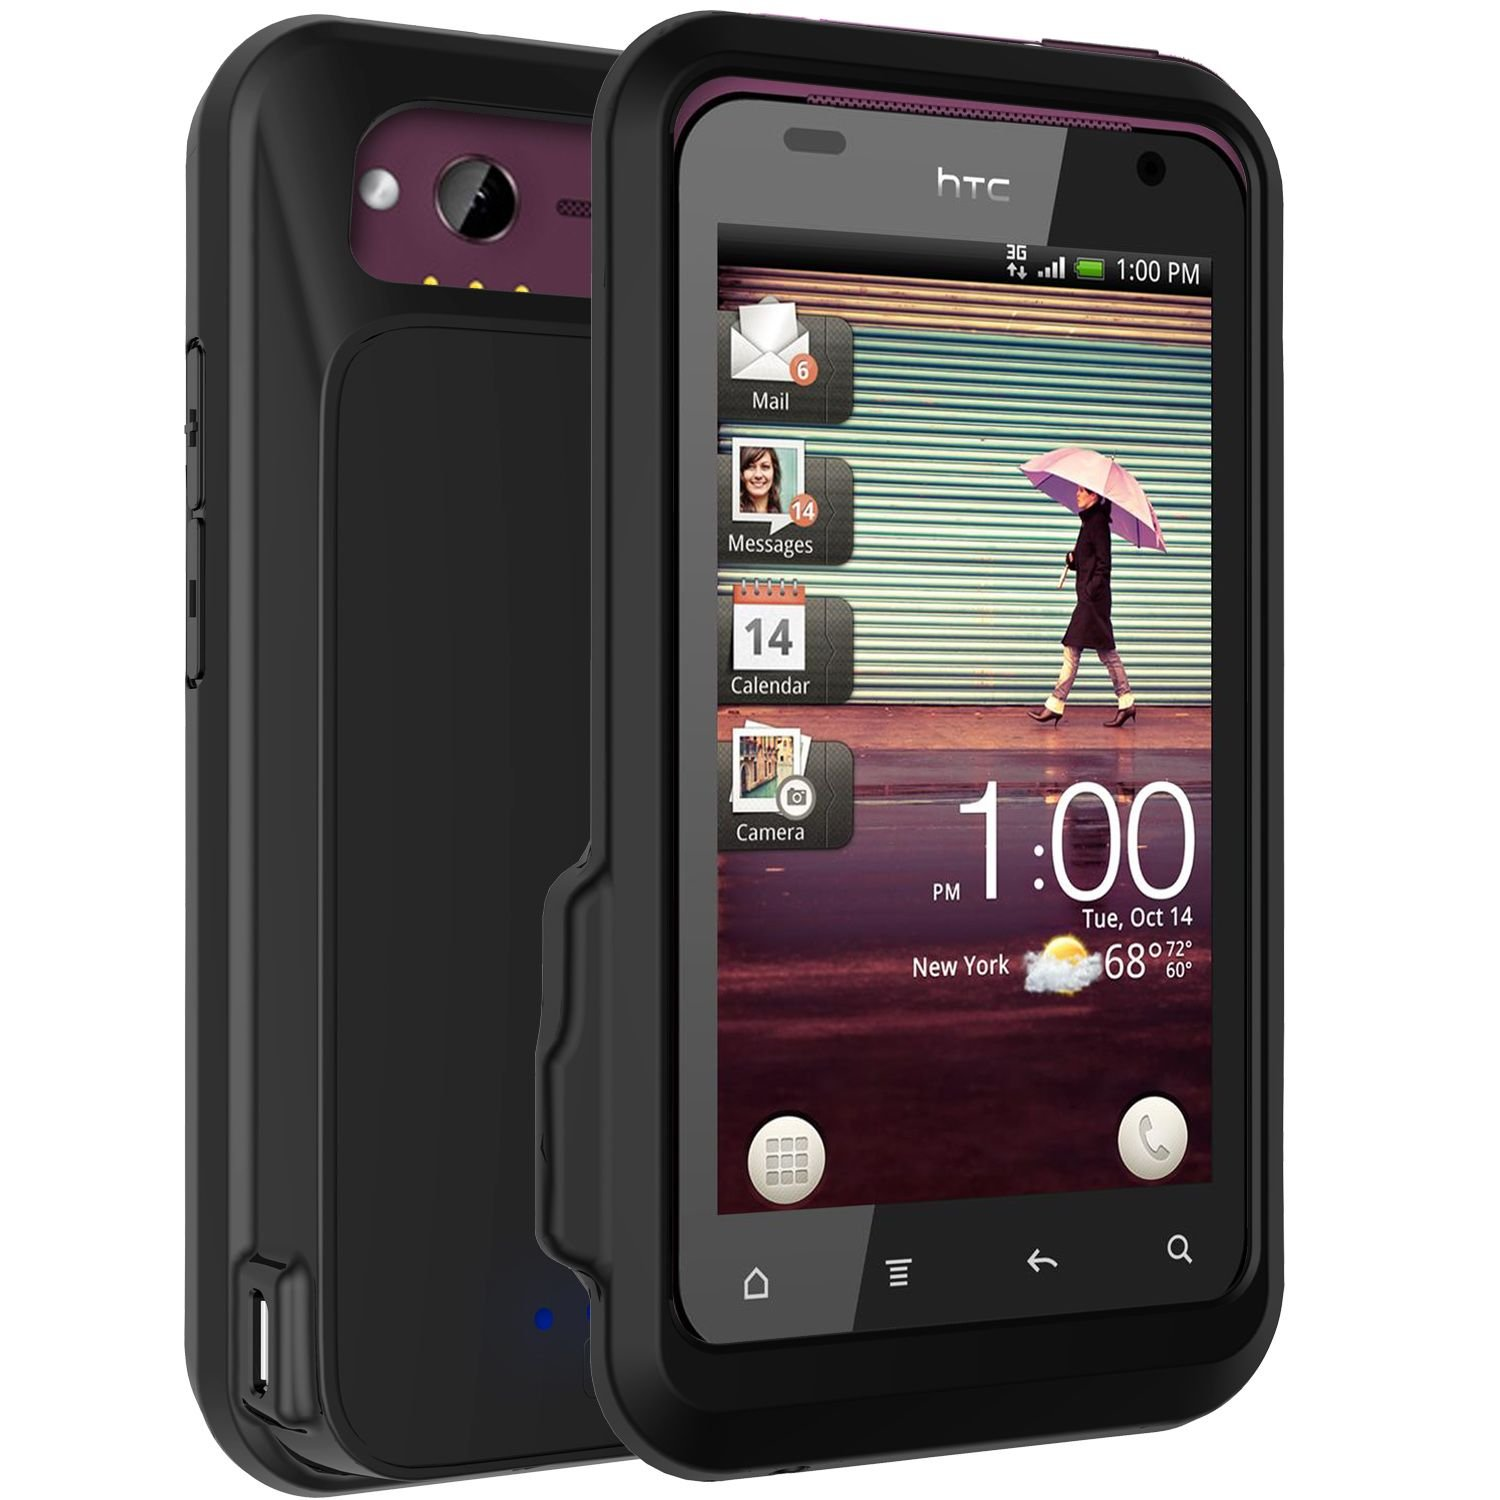 Amazon powerskin battery case for htc thunderbolt black amazon powerskin battery case for htc thunderbolt black cell phones accessories buycottarizona